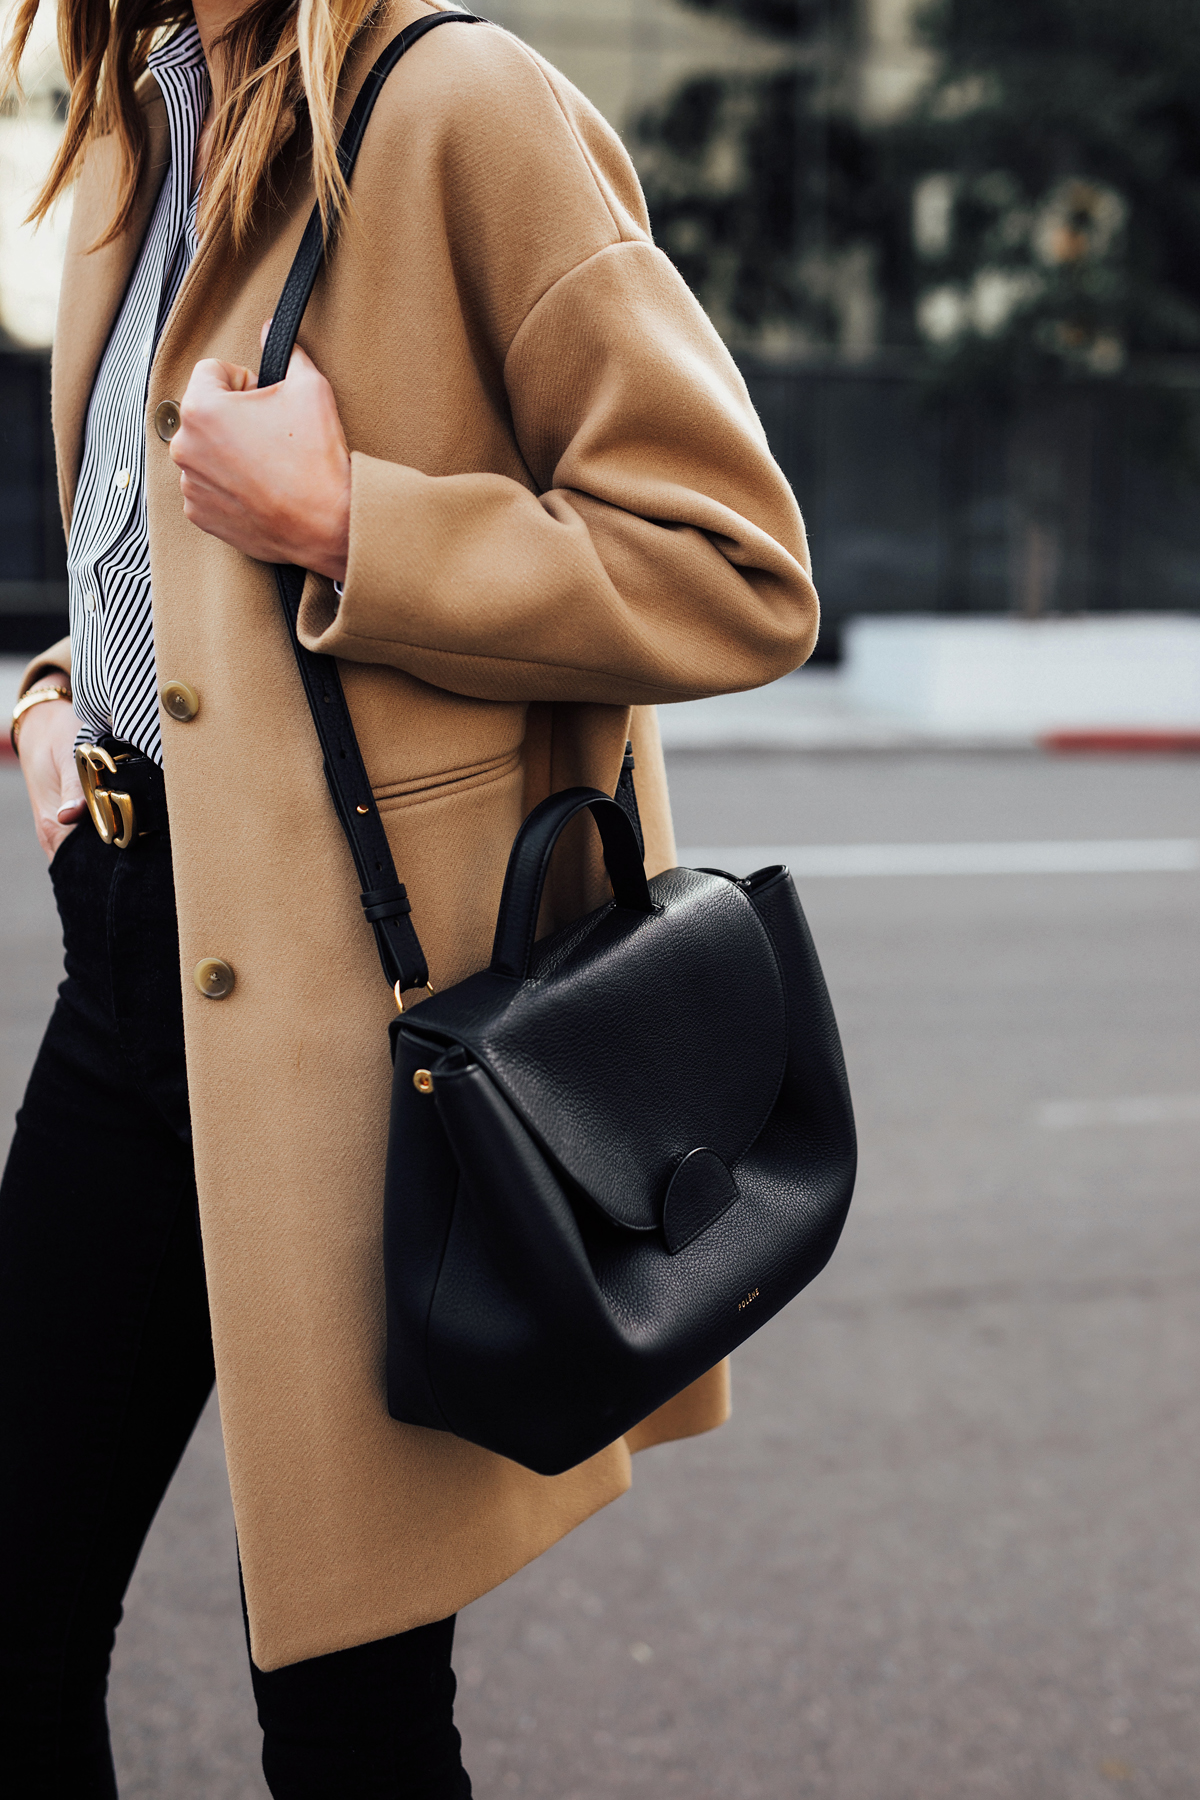 Blonde Woman Wearing Everlane Camel Coat Black White Striped Shirt Black Skinny Jeans Polene Numero Un Black Handbag Fashion Jackson San Diego Fashion Blogger Street Style